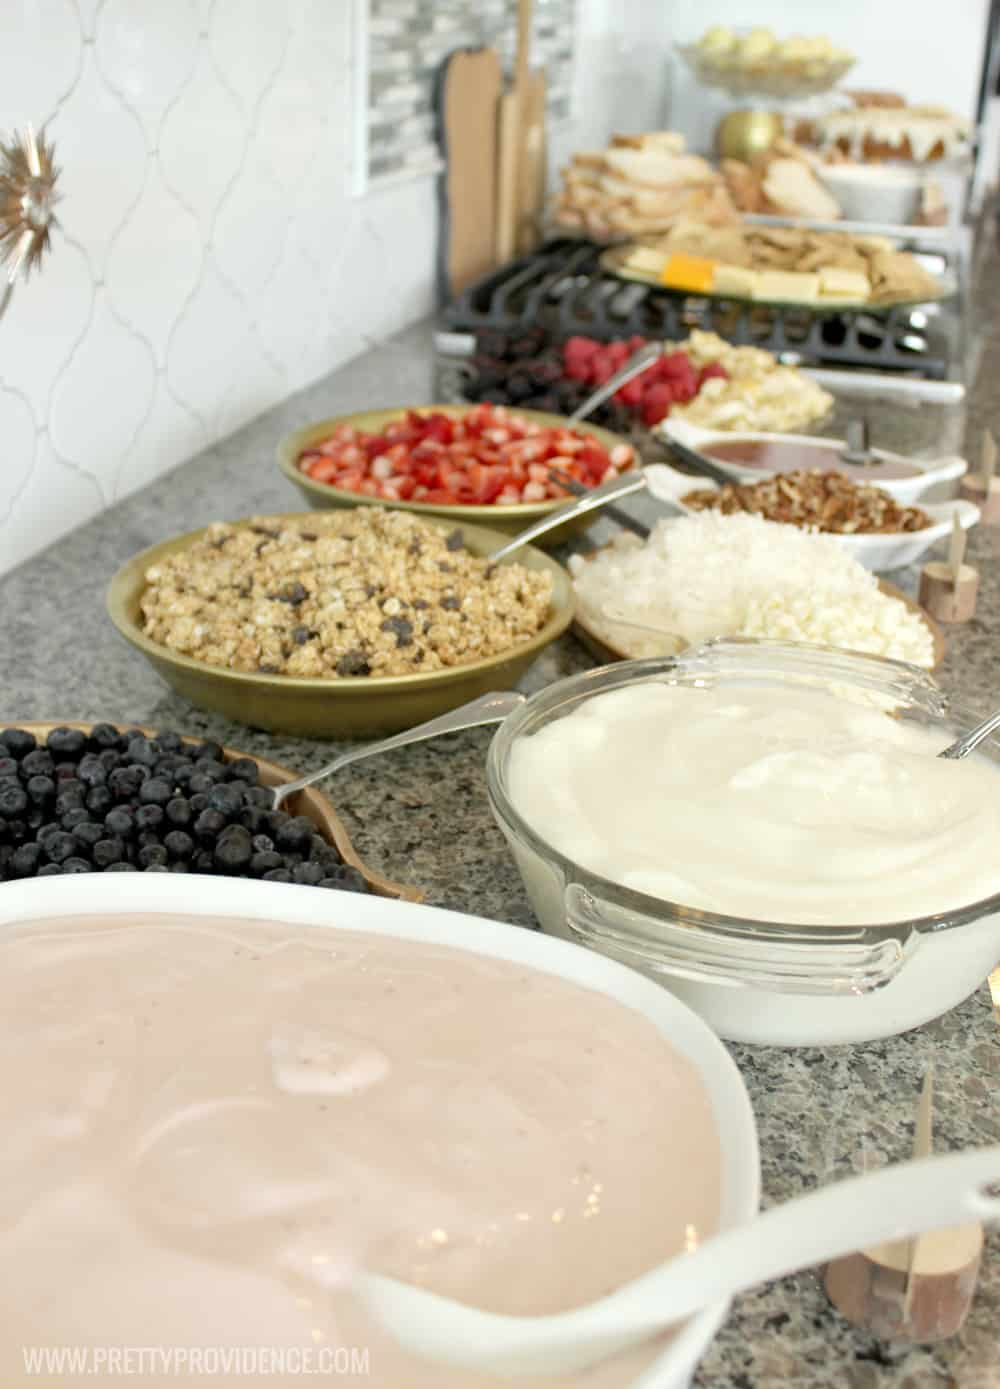 Yogurt Bar With Toppings Is Great For A Party Or Brunch!